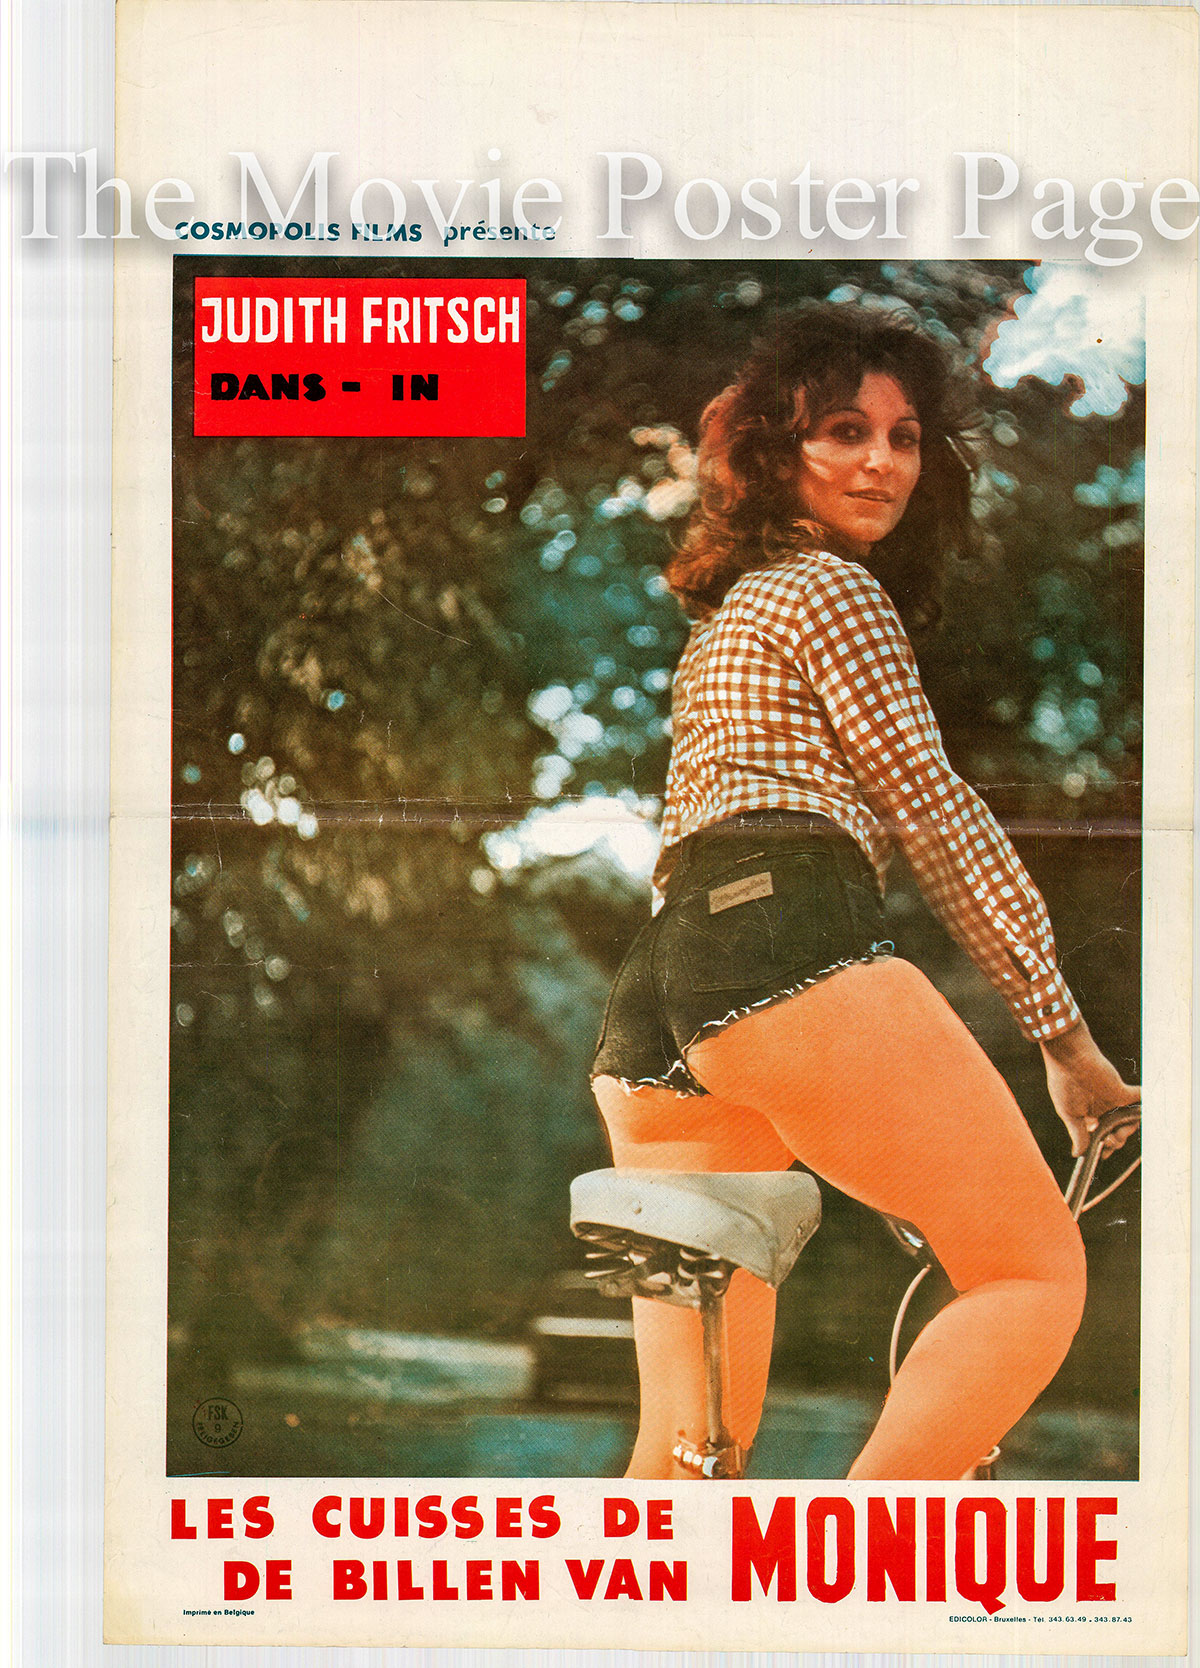 Pictured is a Belgian promotional poster for the 1981 Eddy Saller film Les Cuisses de Monique starring Judith Fritsch.